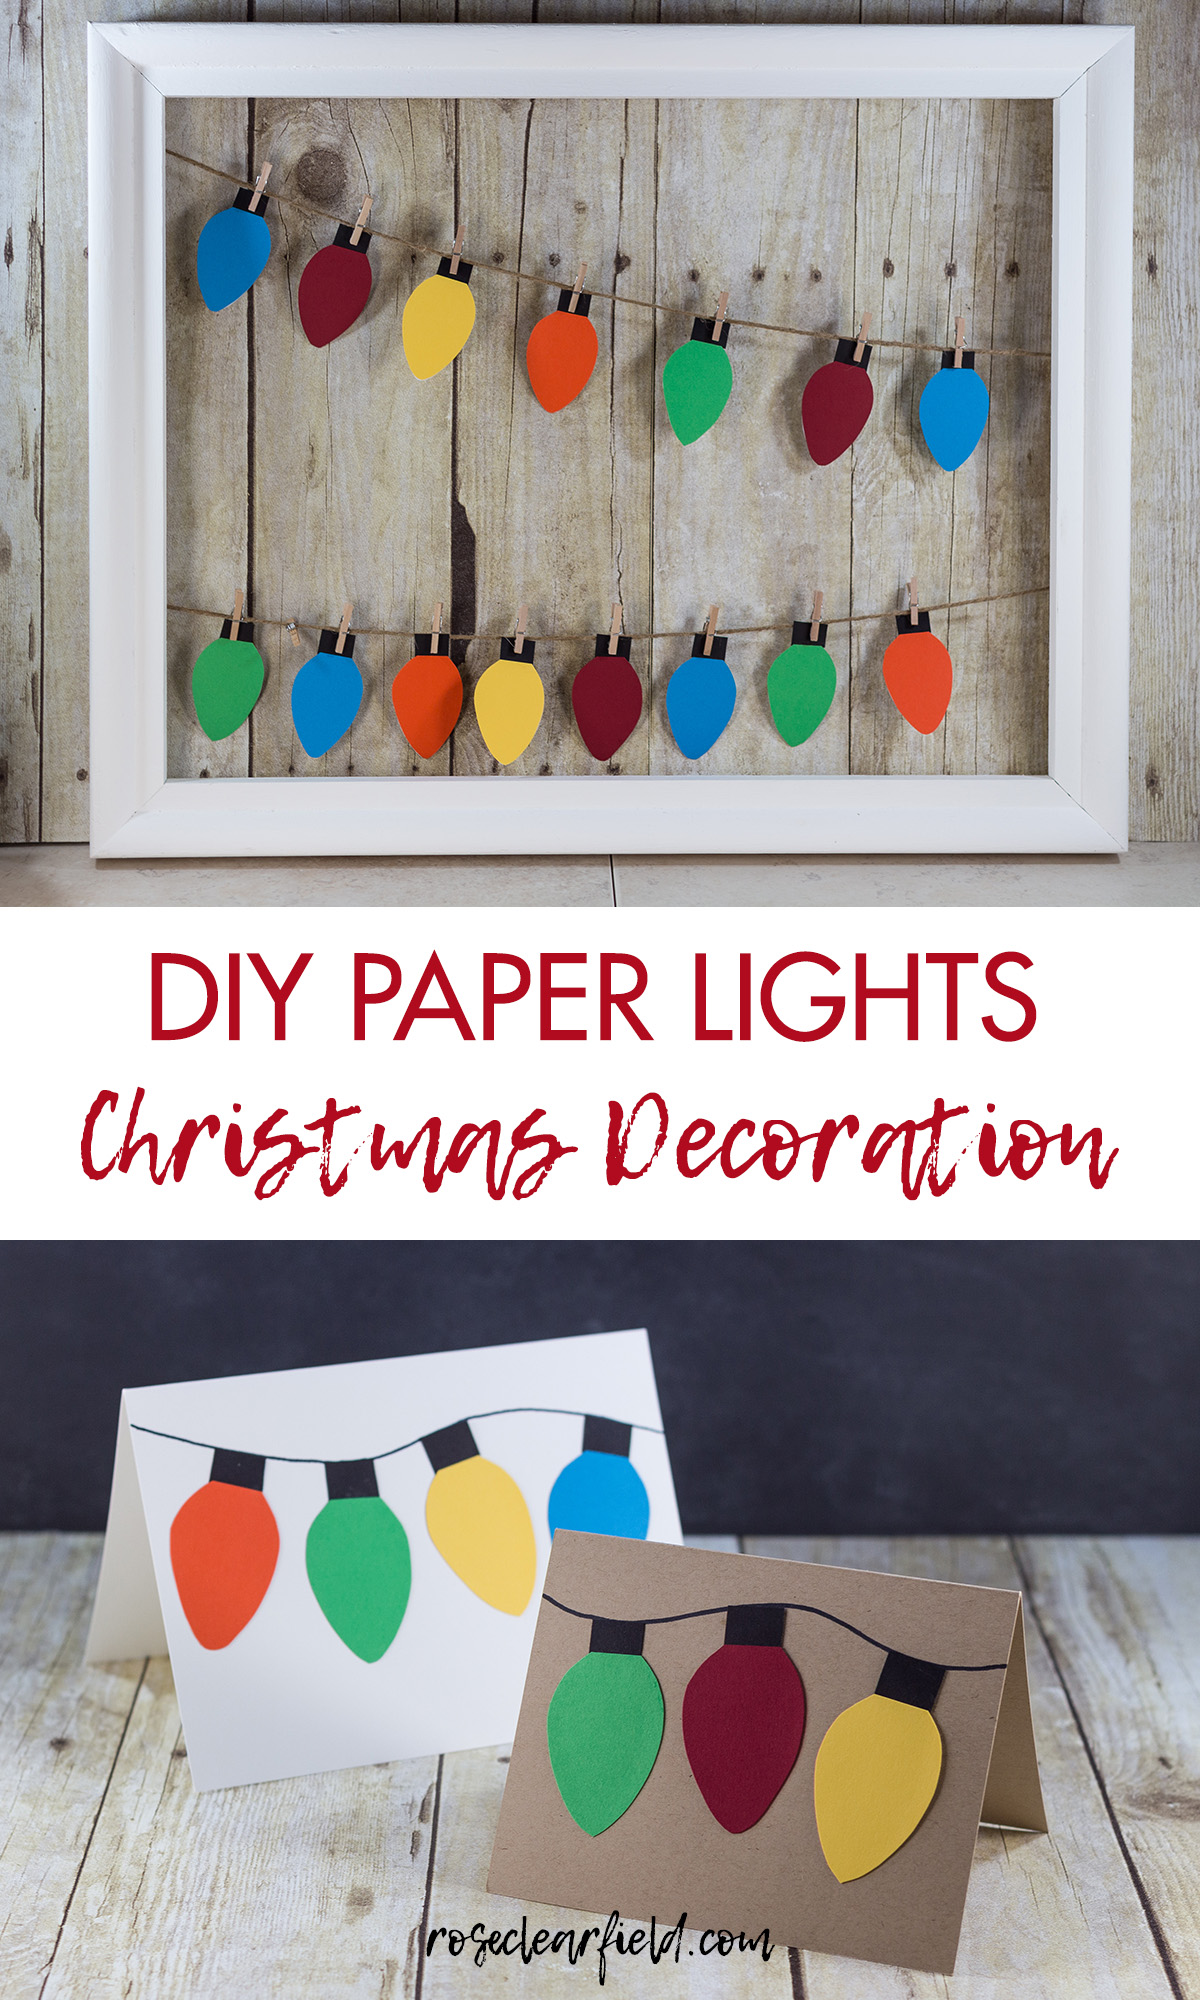 DIY Paper Lights Christmas Decoration